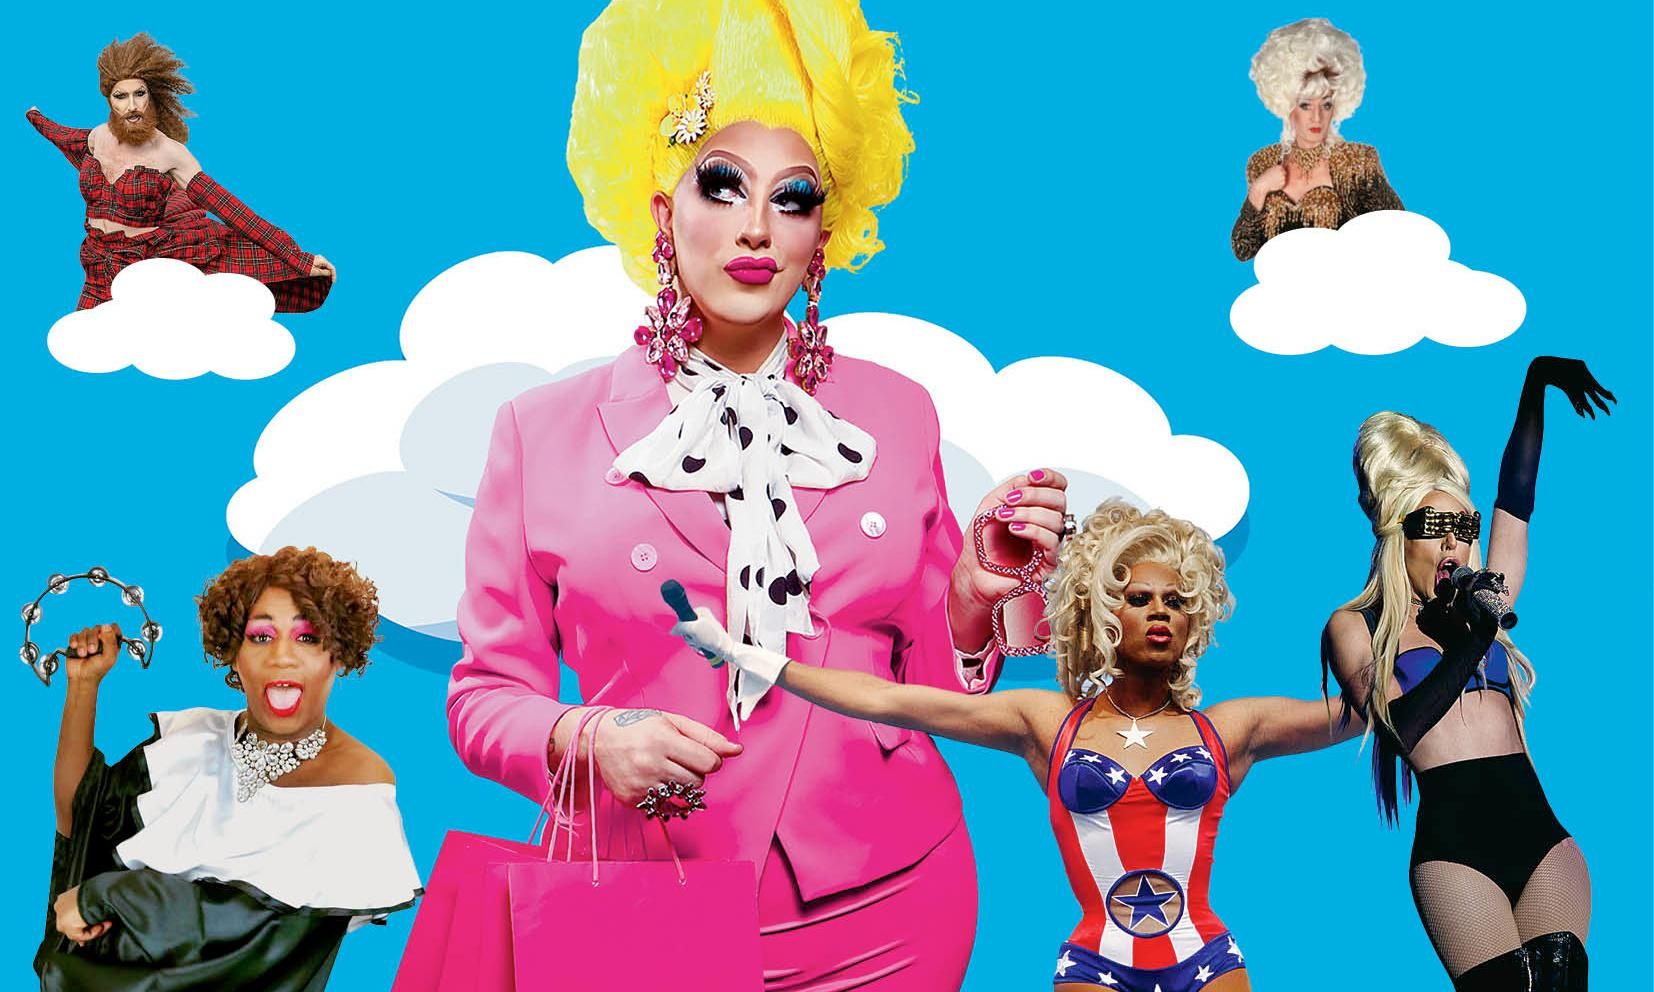 'Finally! A sport for us gay people!': how drag went mainstream